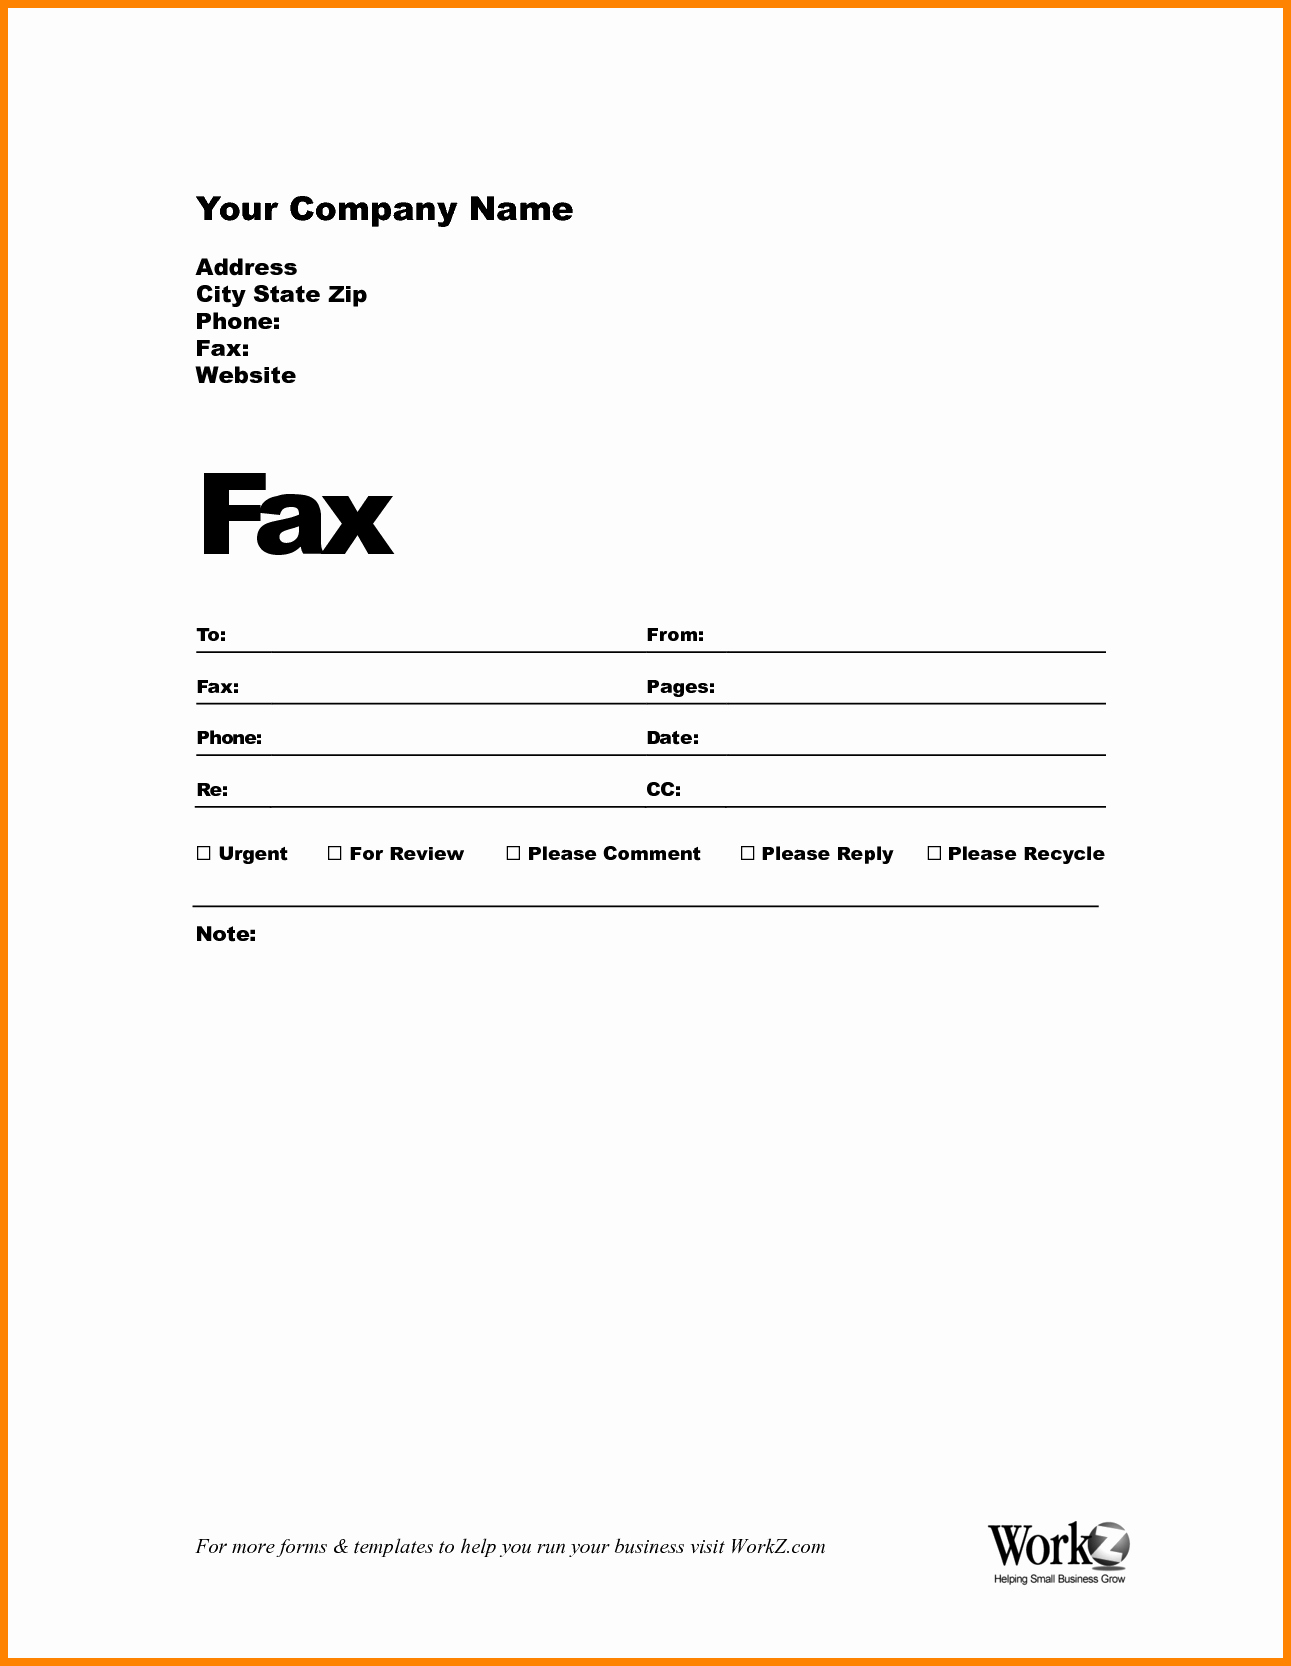 Fax Template In Word 2010 Fresh Microsoft Fice 2010 Fax Cover Sheet Template